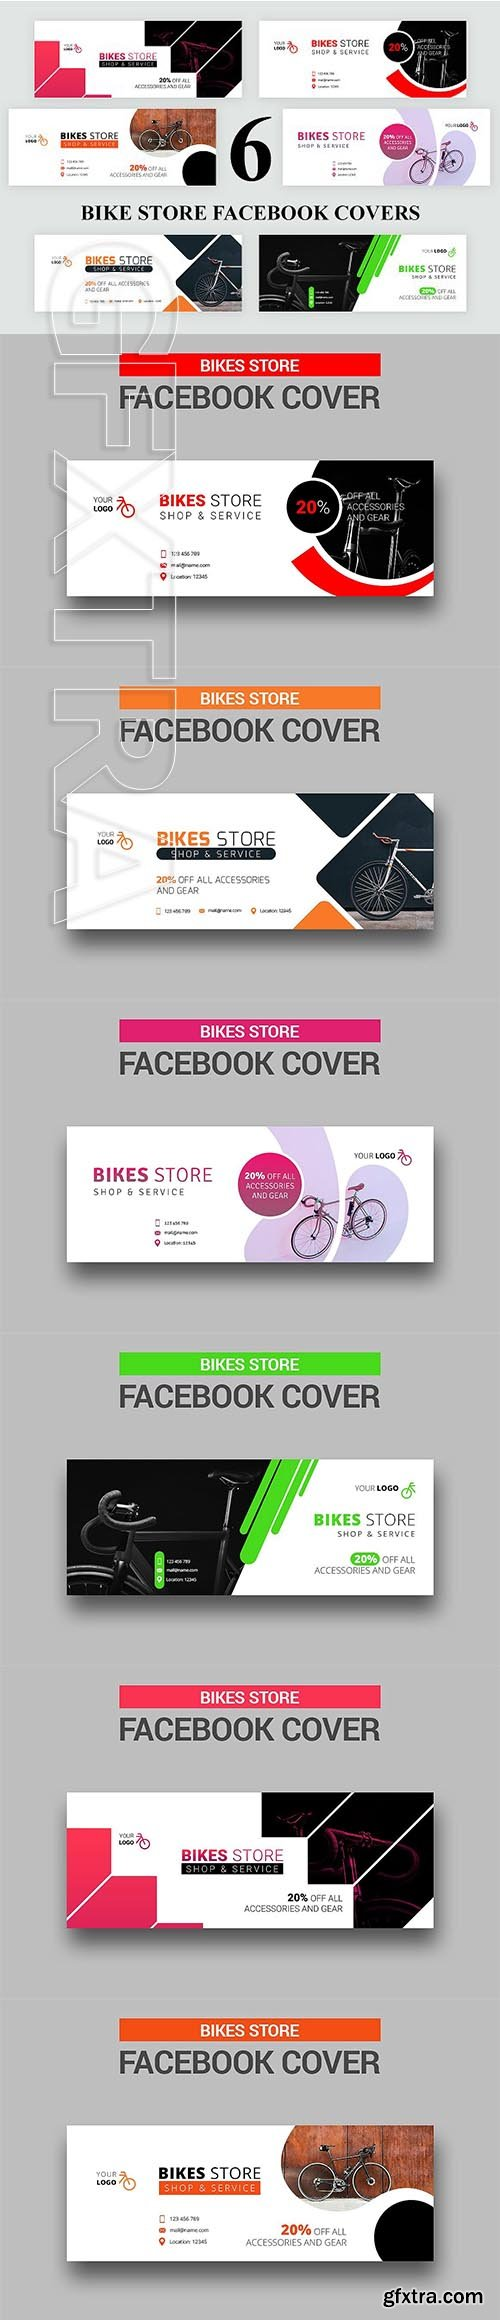 CreativeMarket - Bike Store Facebook Templates 2768106